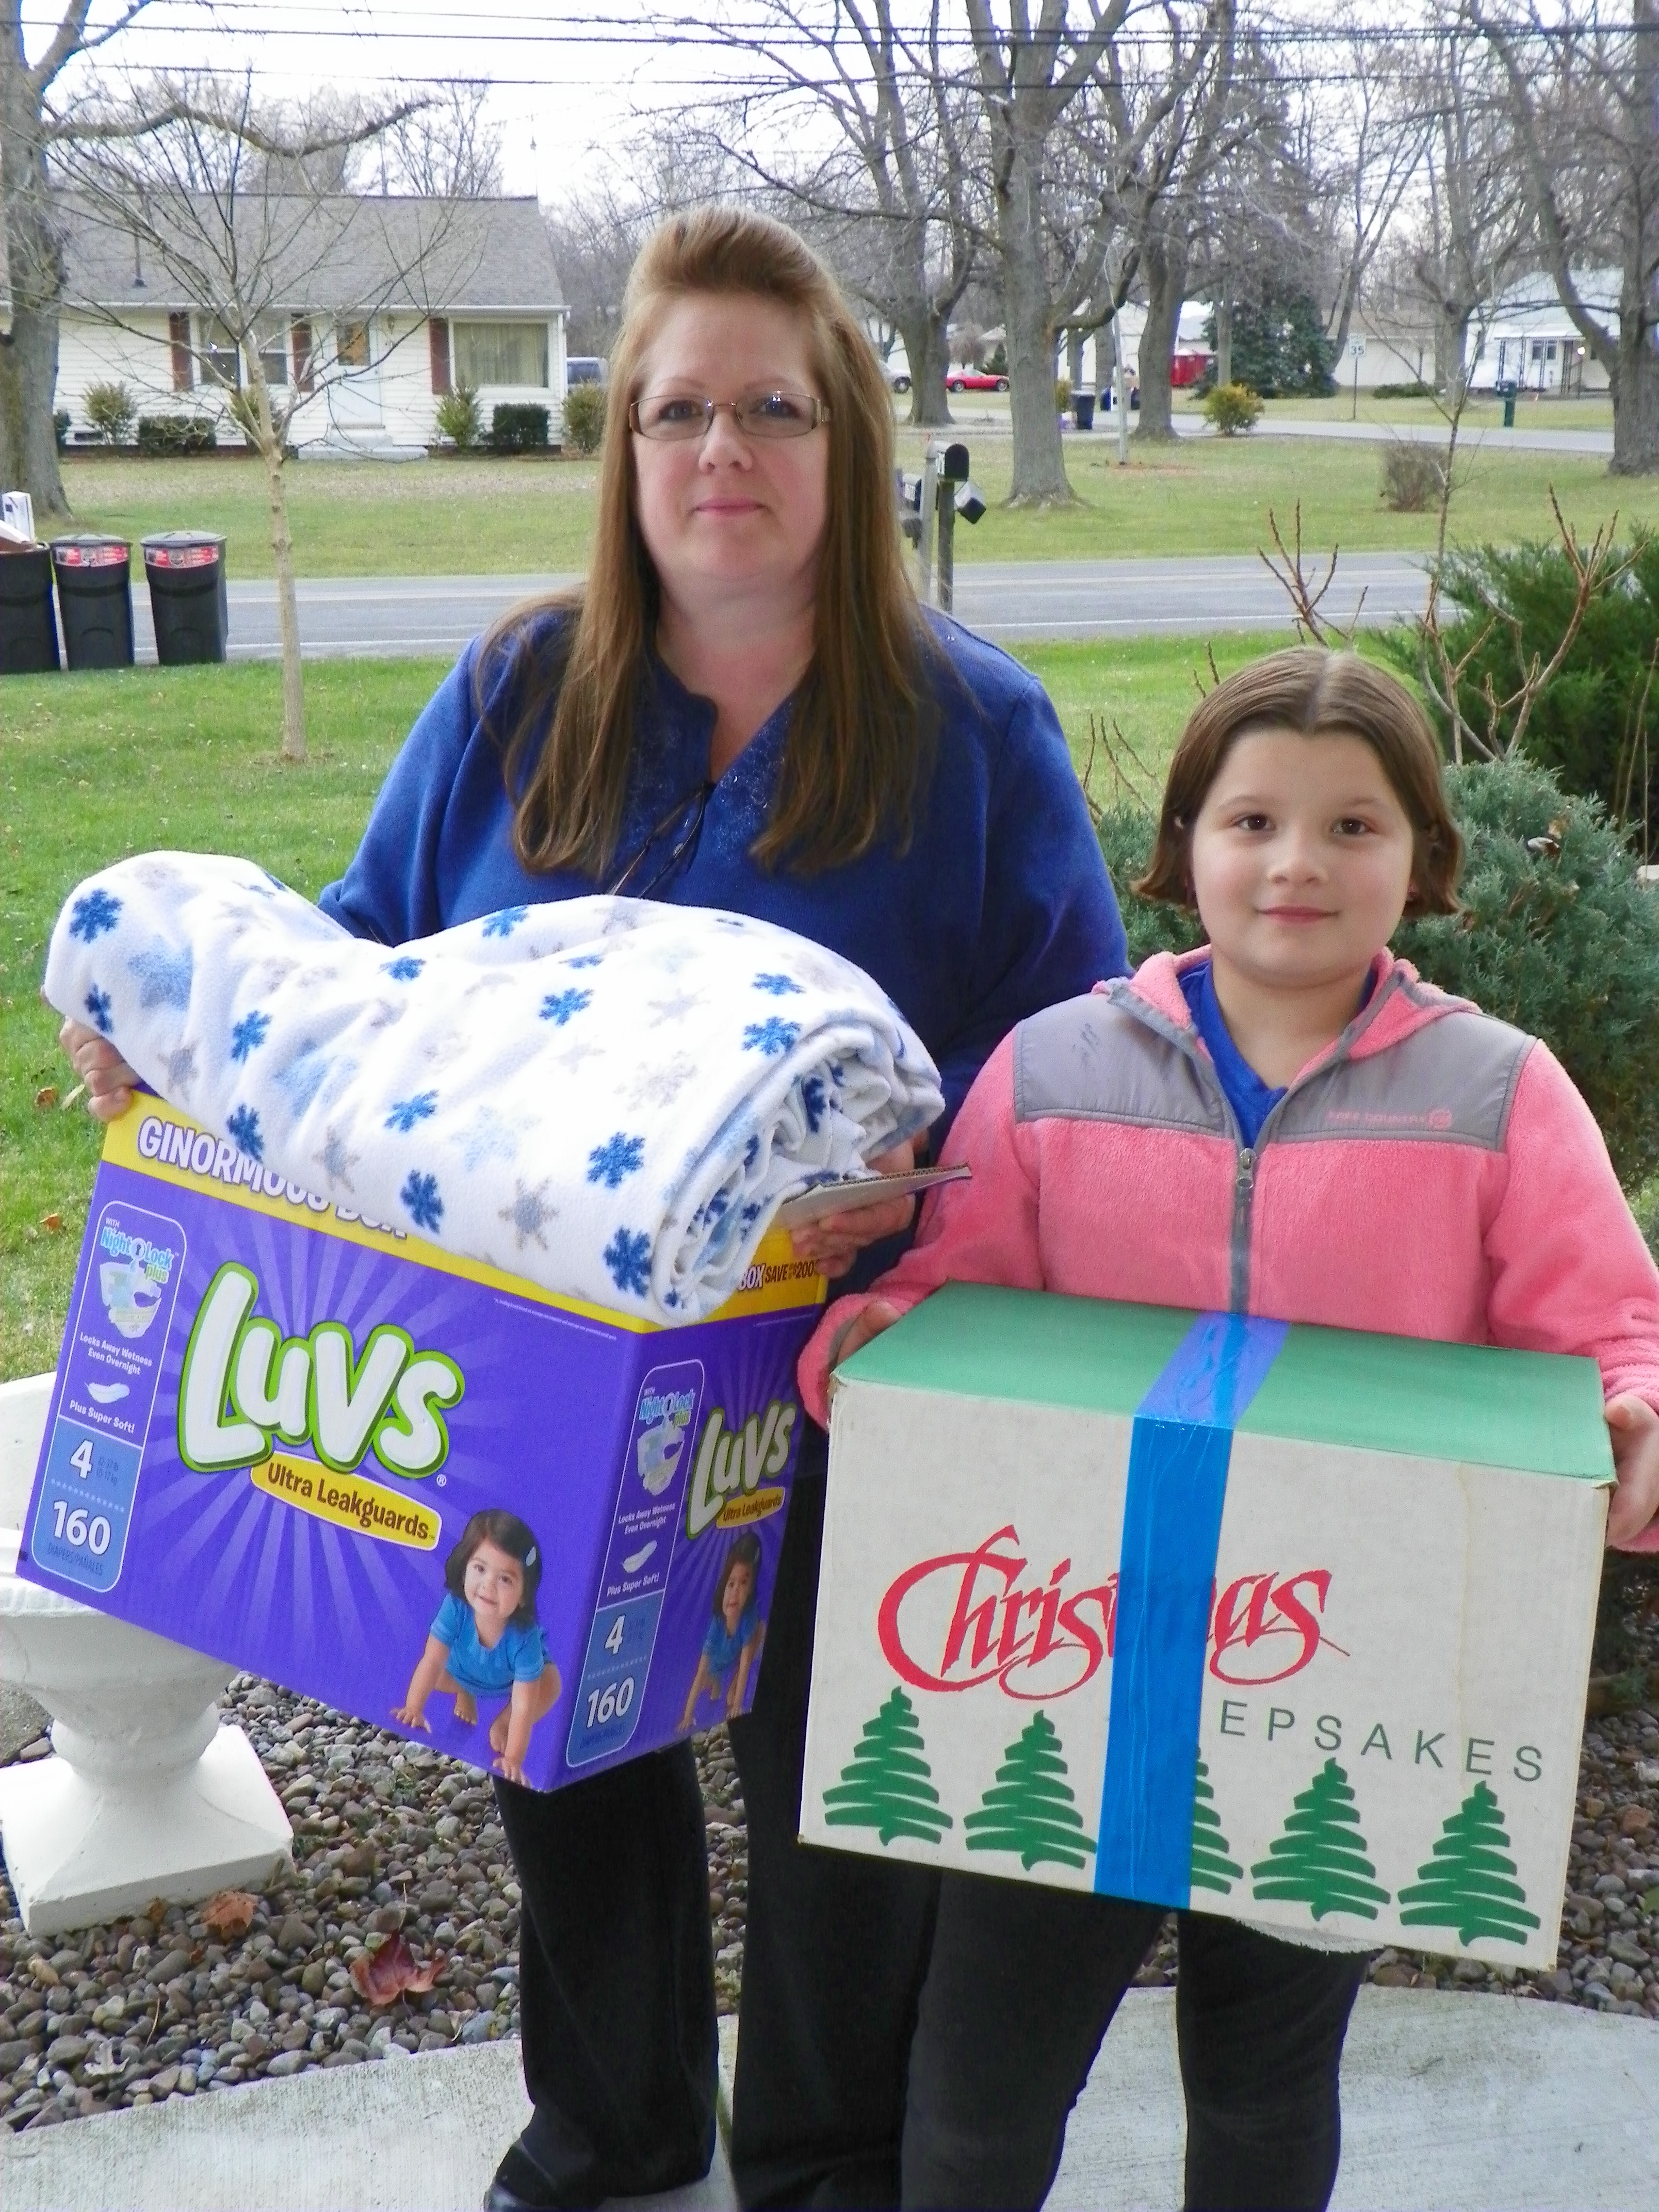 Denise Noble and her granddaughter, Savannah Robins, carry boxes of Christmas gifts to deliver to needy families in rural Niagara County during a prior year. (Provided photo).